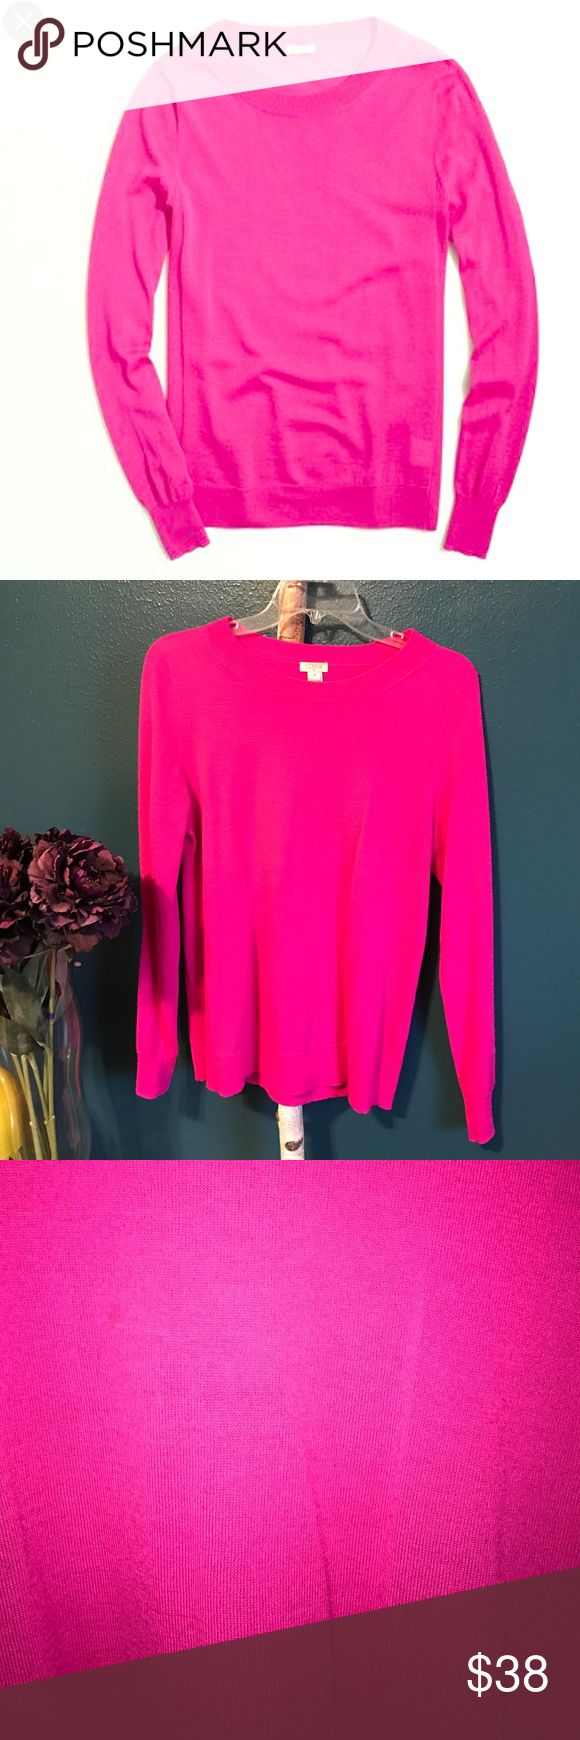 J. Crew Sawyer Sweater in Fuchsia This adorable sweater is super comfortable and is 50% acrylic and 50% merino wool! Gently worn, very minor pilling as seen in last photo. J. Crew Sweaters Crew & Scoop Necks